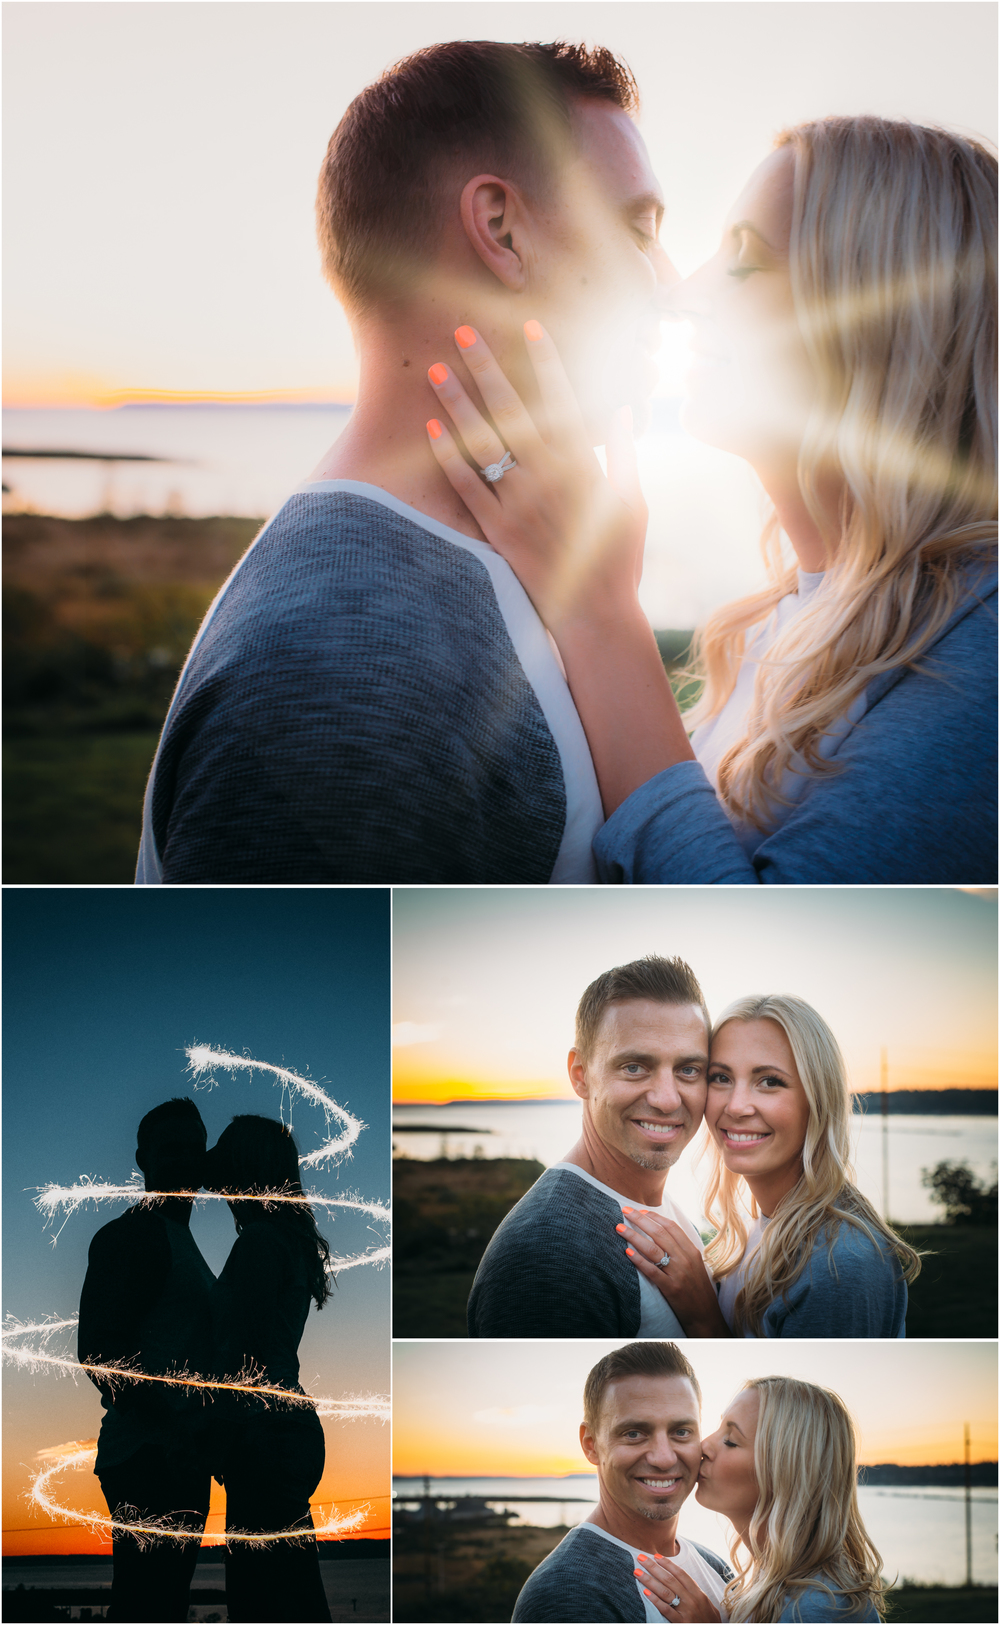 Save the date photos at sunset - House of Five Blog